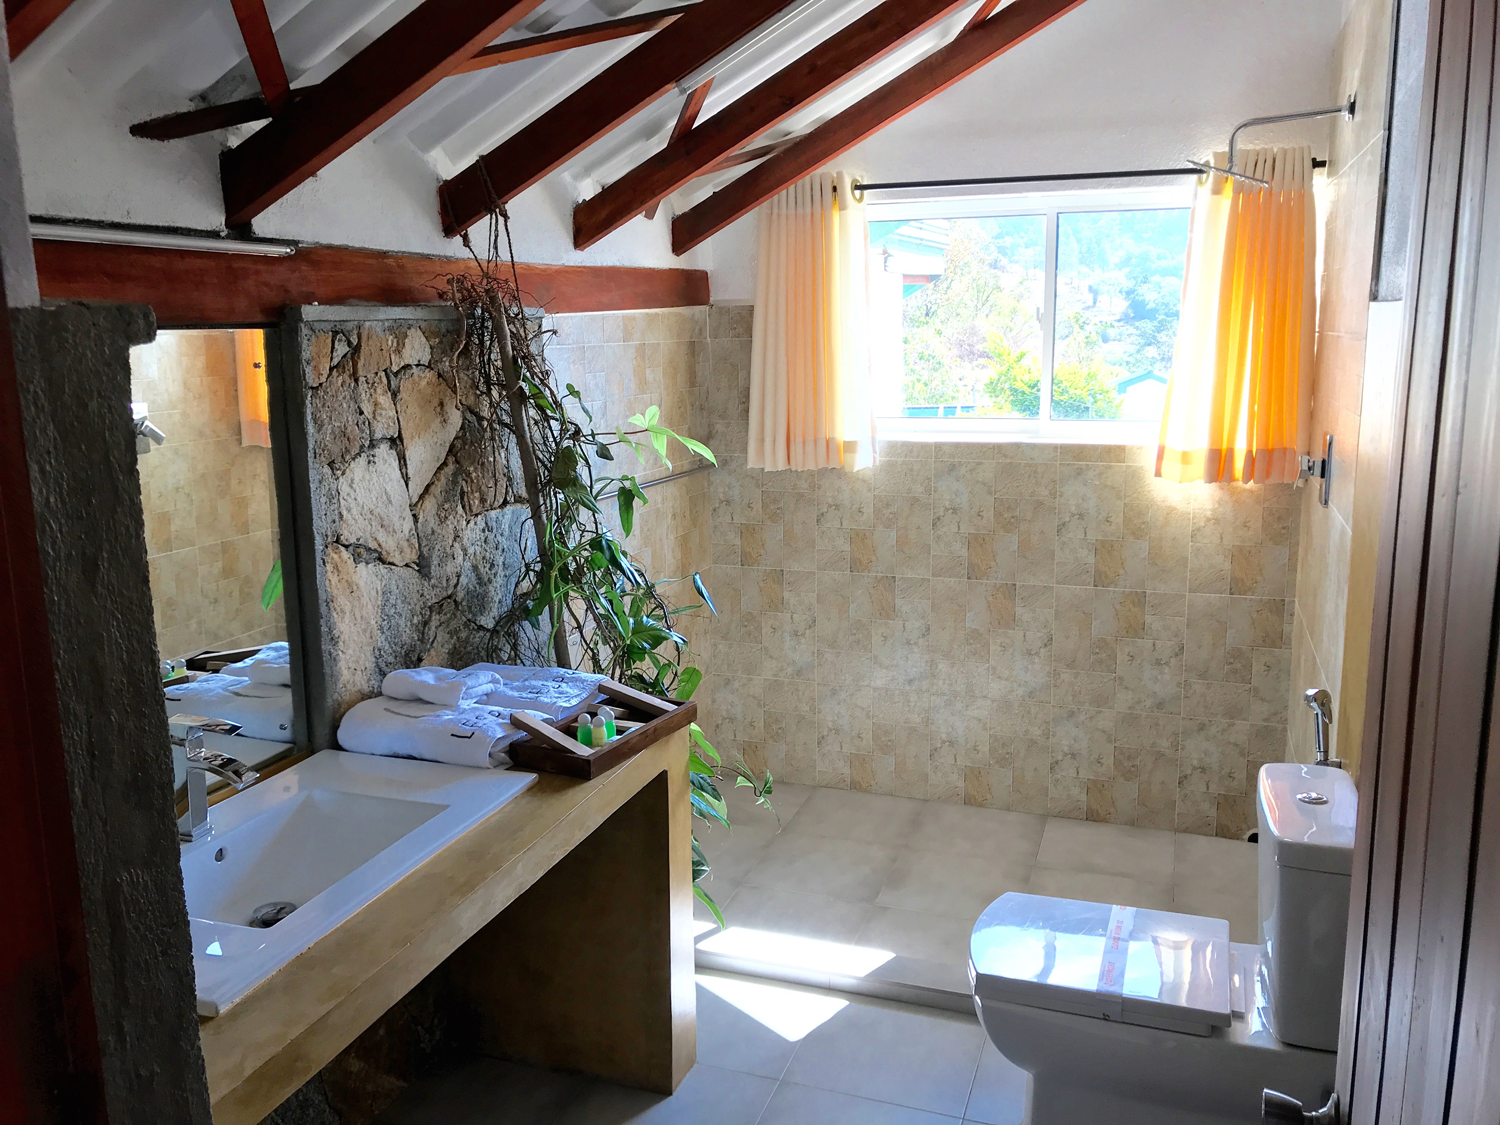 Clasic toilets in kandy hotels